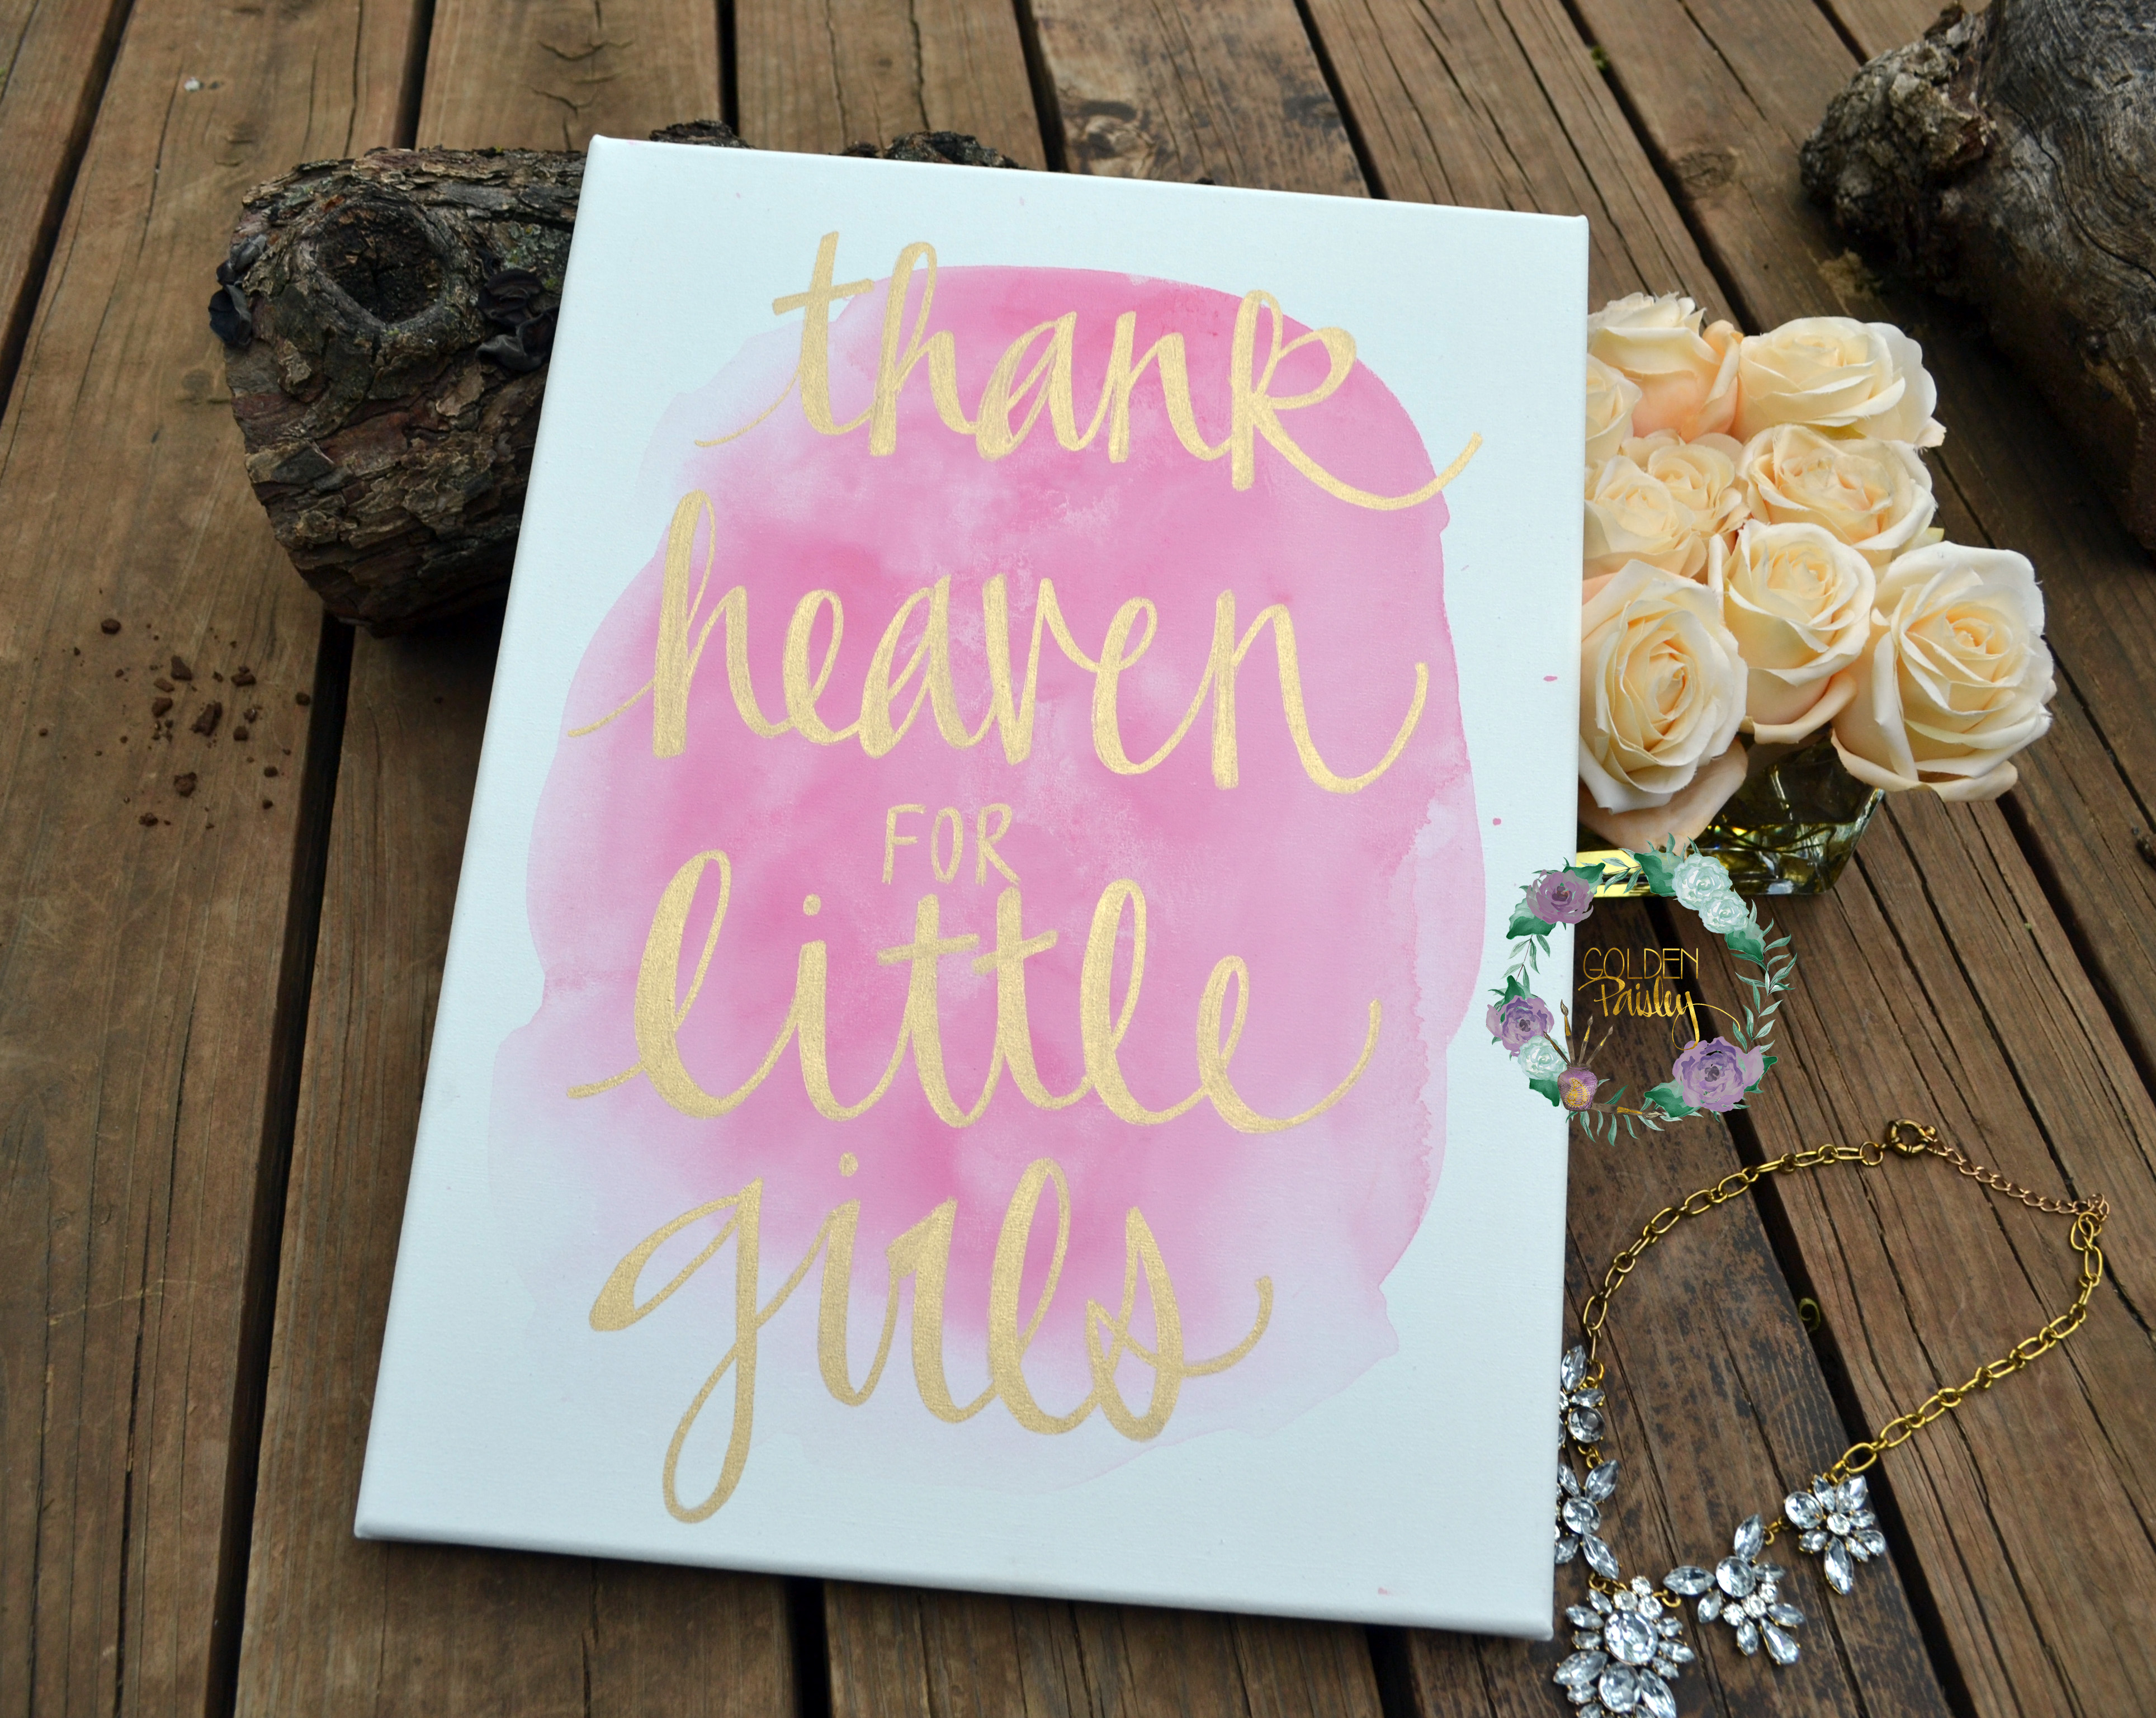 Thank heaven for little girls watercolor painting